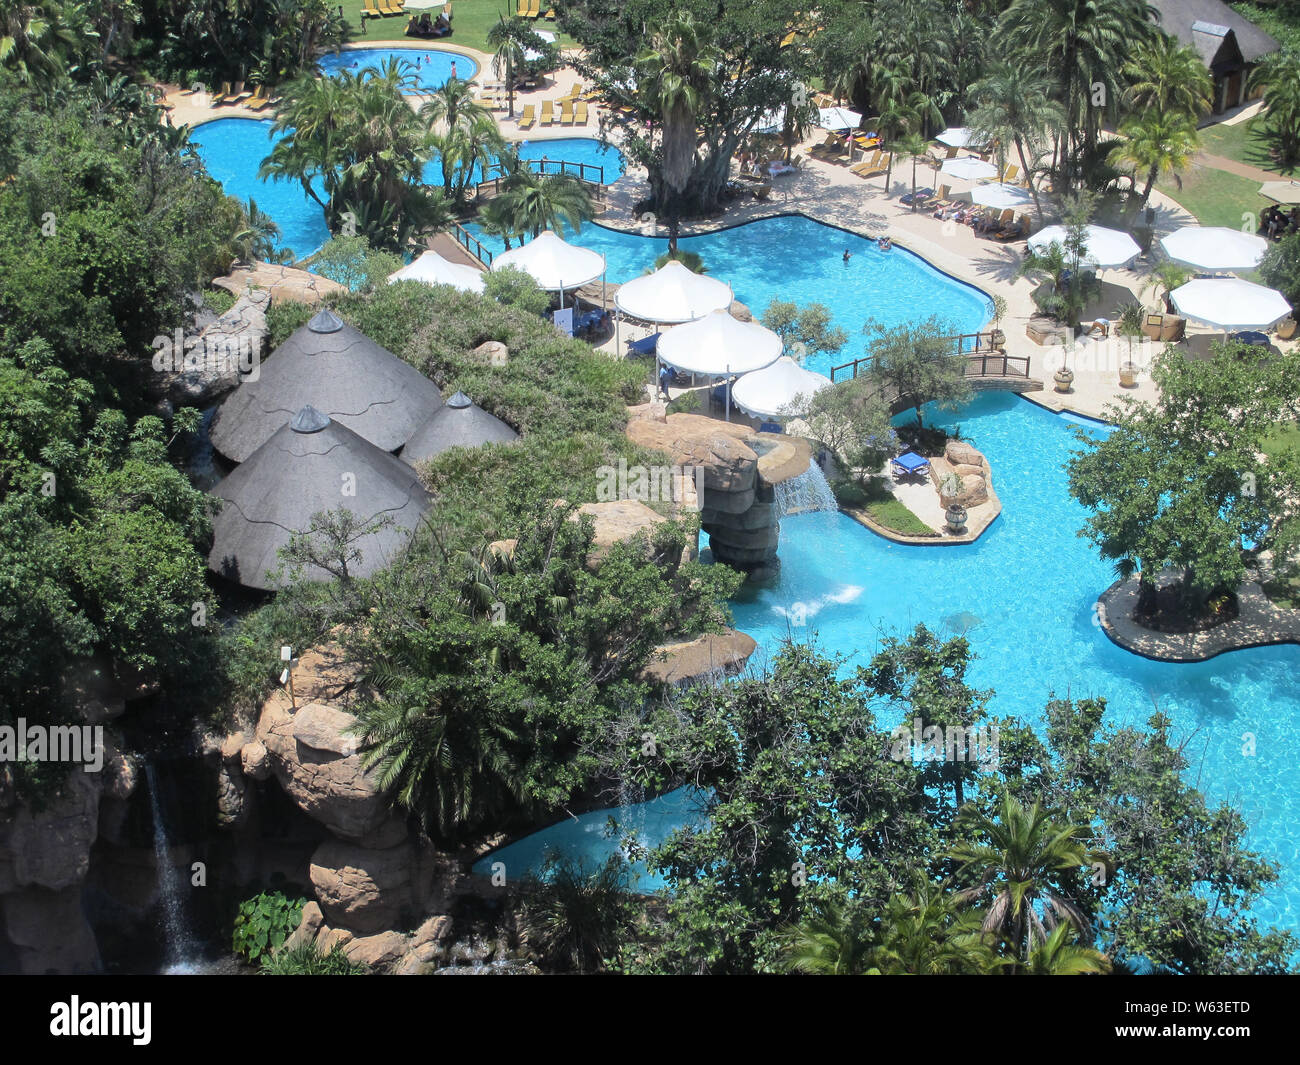 aerial view or looking down on a hotel resort swimming pool surrounded by trees and umbrellas with turquoise blue water at Sun City, South Africa Stock Photo